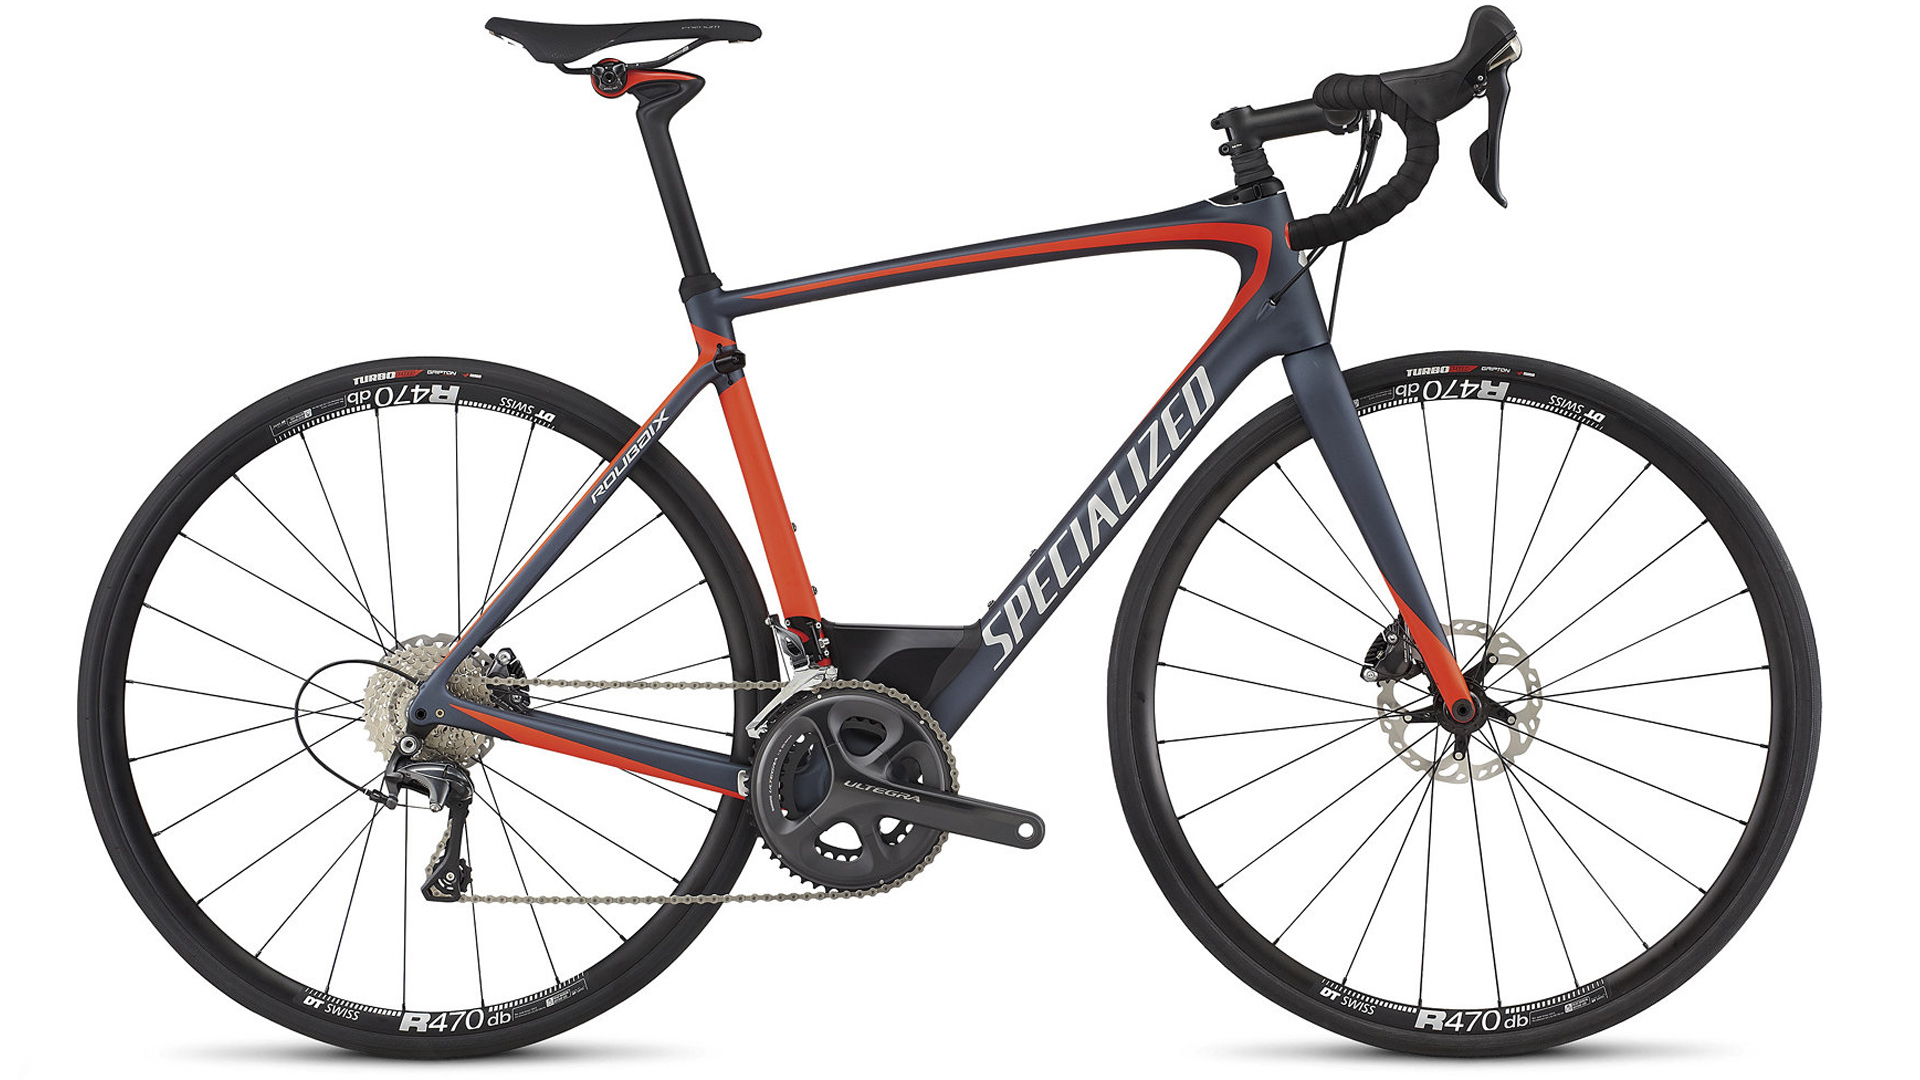 Campana Radsport – Specialized Roubaix